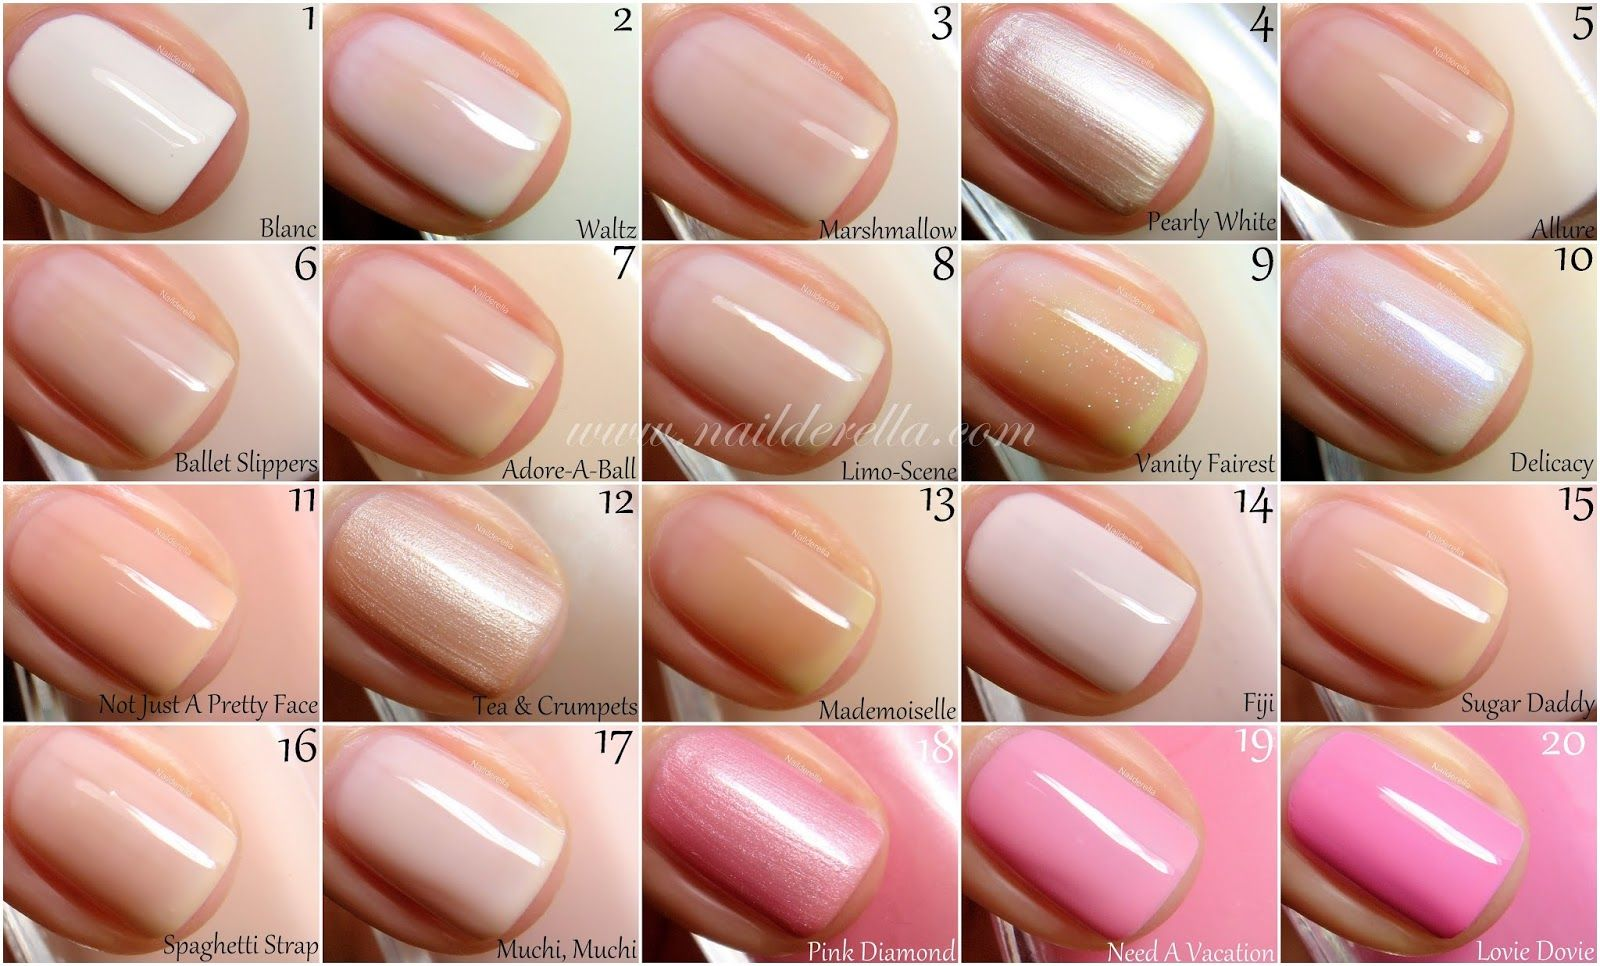 Essie Color guide of 100 color swatches! Description from pinterest ...